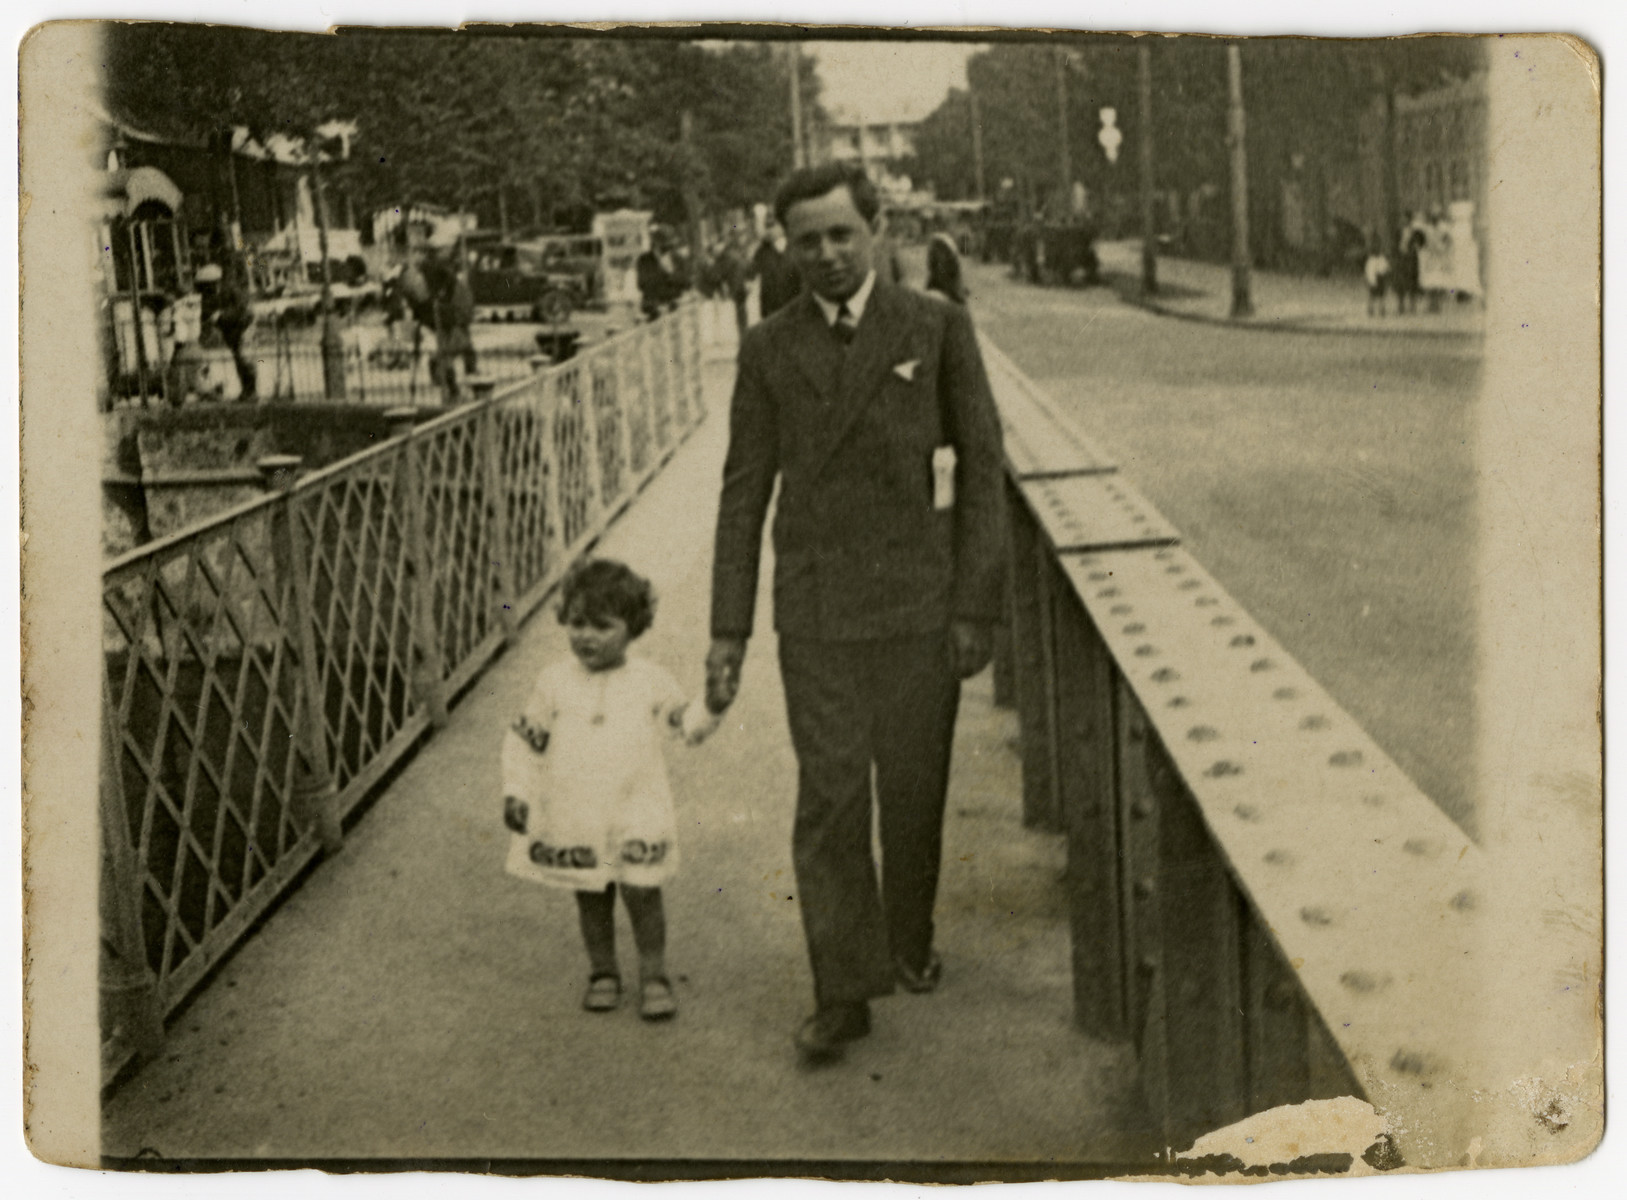 Israel Hilsenrath walks down the street hand-in-hand with his young daughter Susi.